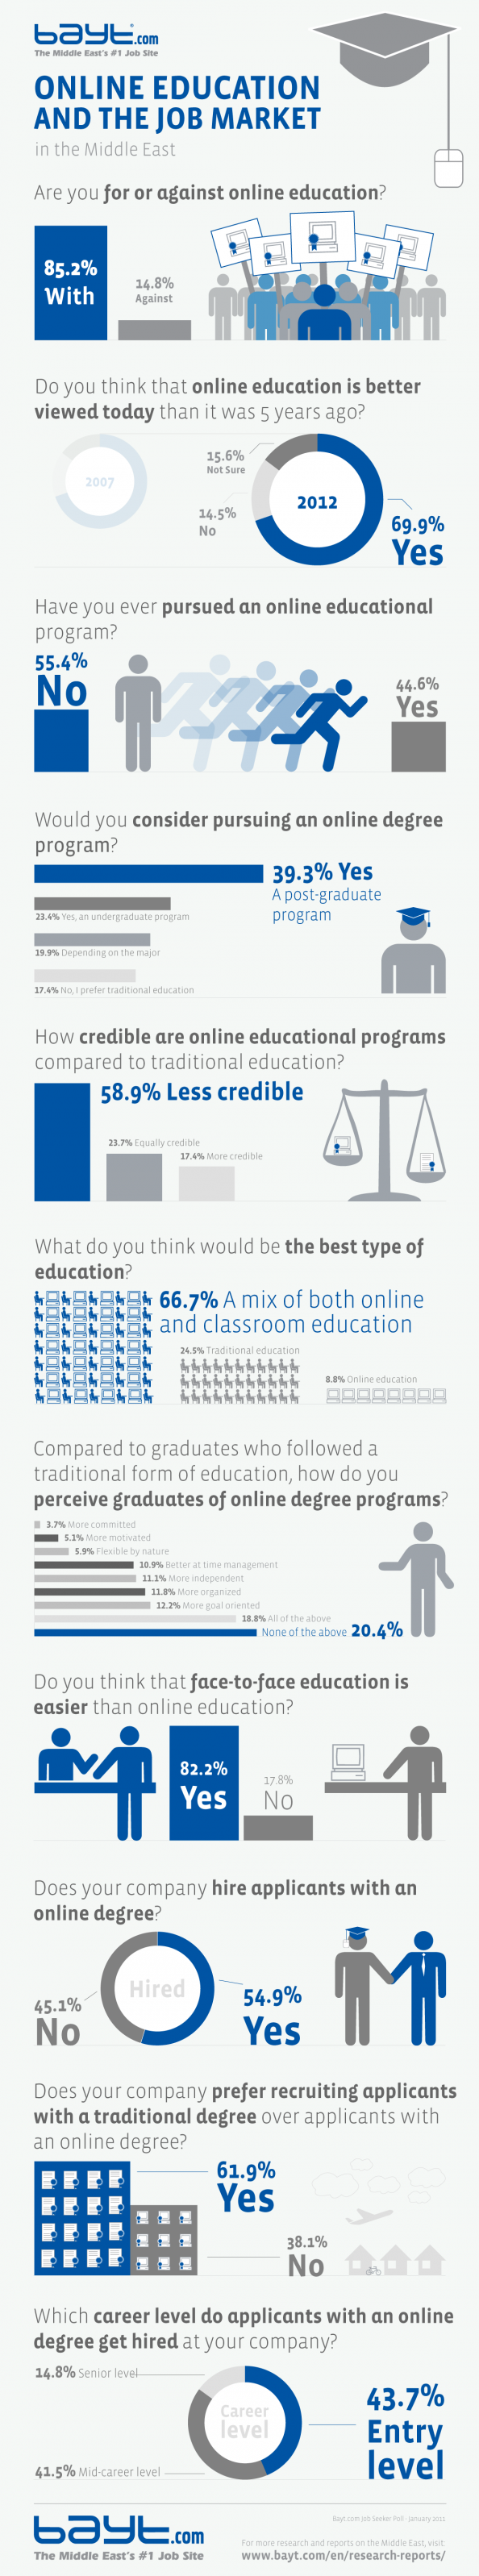 Infographic: Online Education and the Job Market in the Middle East Infographic